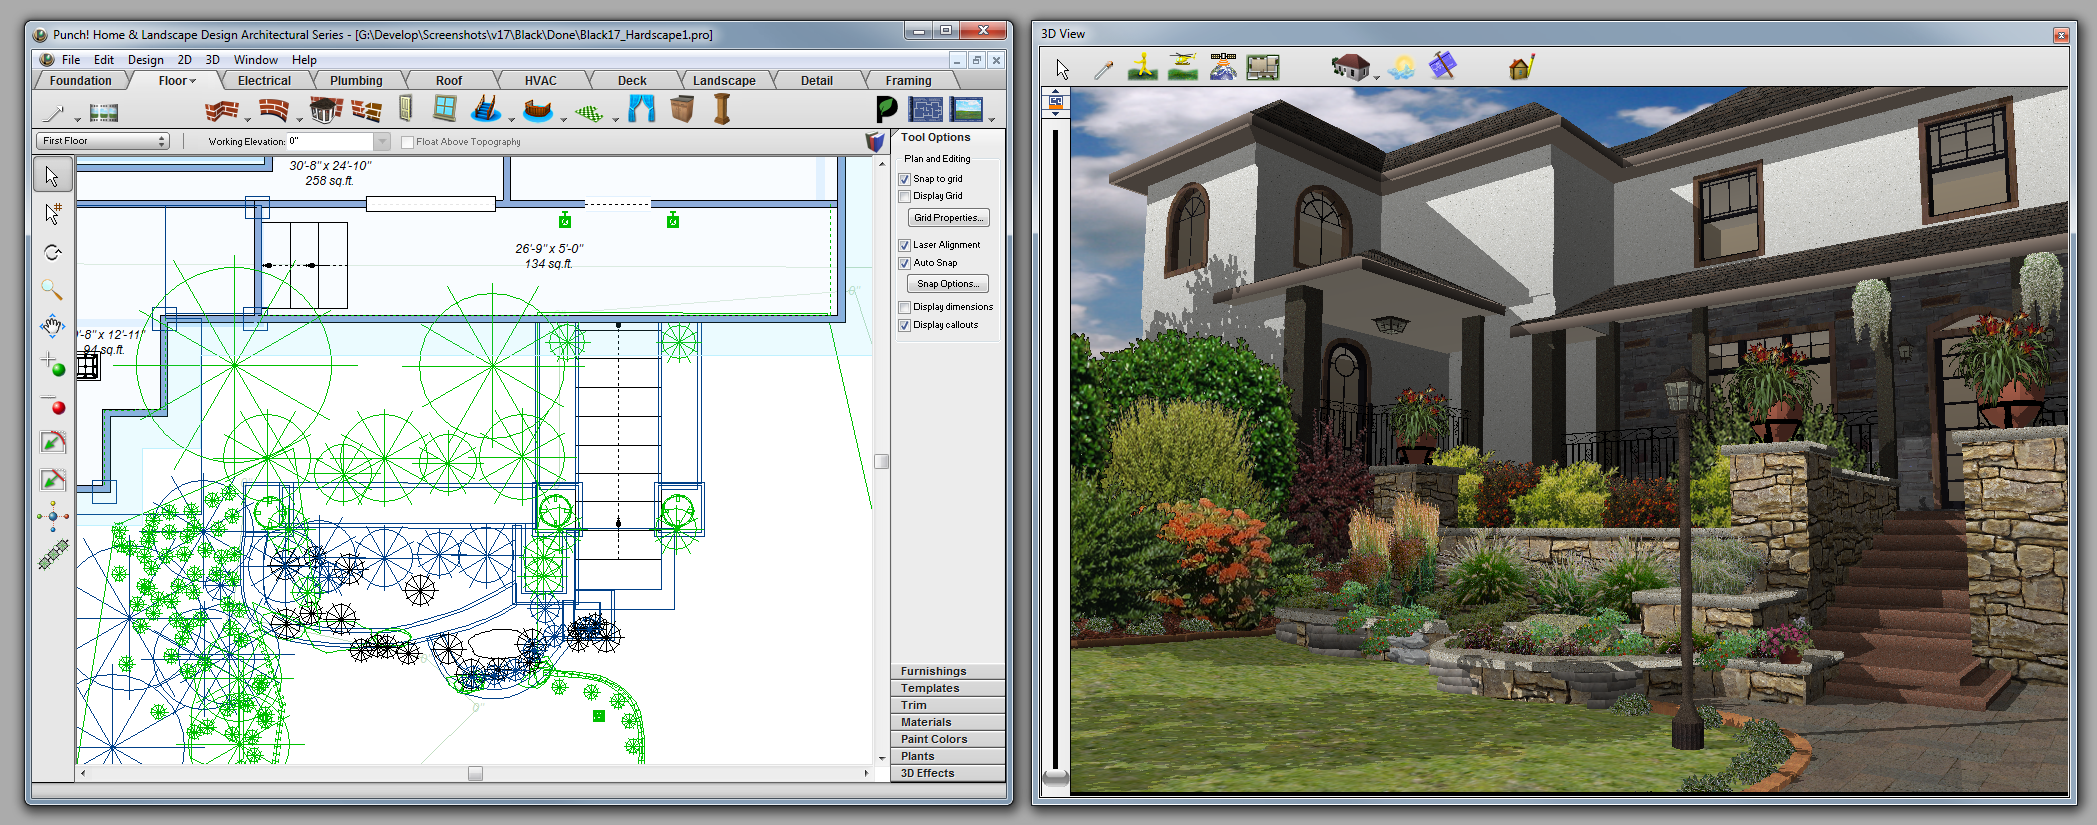 architecte 3d express 2014 le logiciel d 39 architecture 3d pour concevoir votre maison ou votre. Black Bedroom Furniture Sets. Home Design Ideas